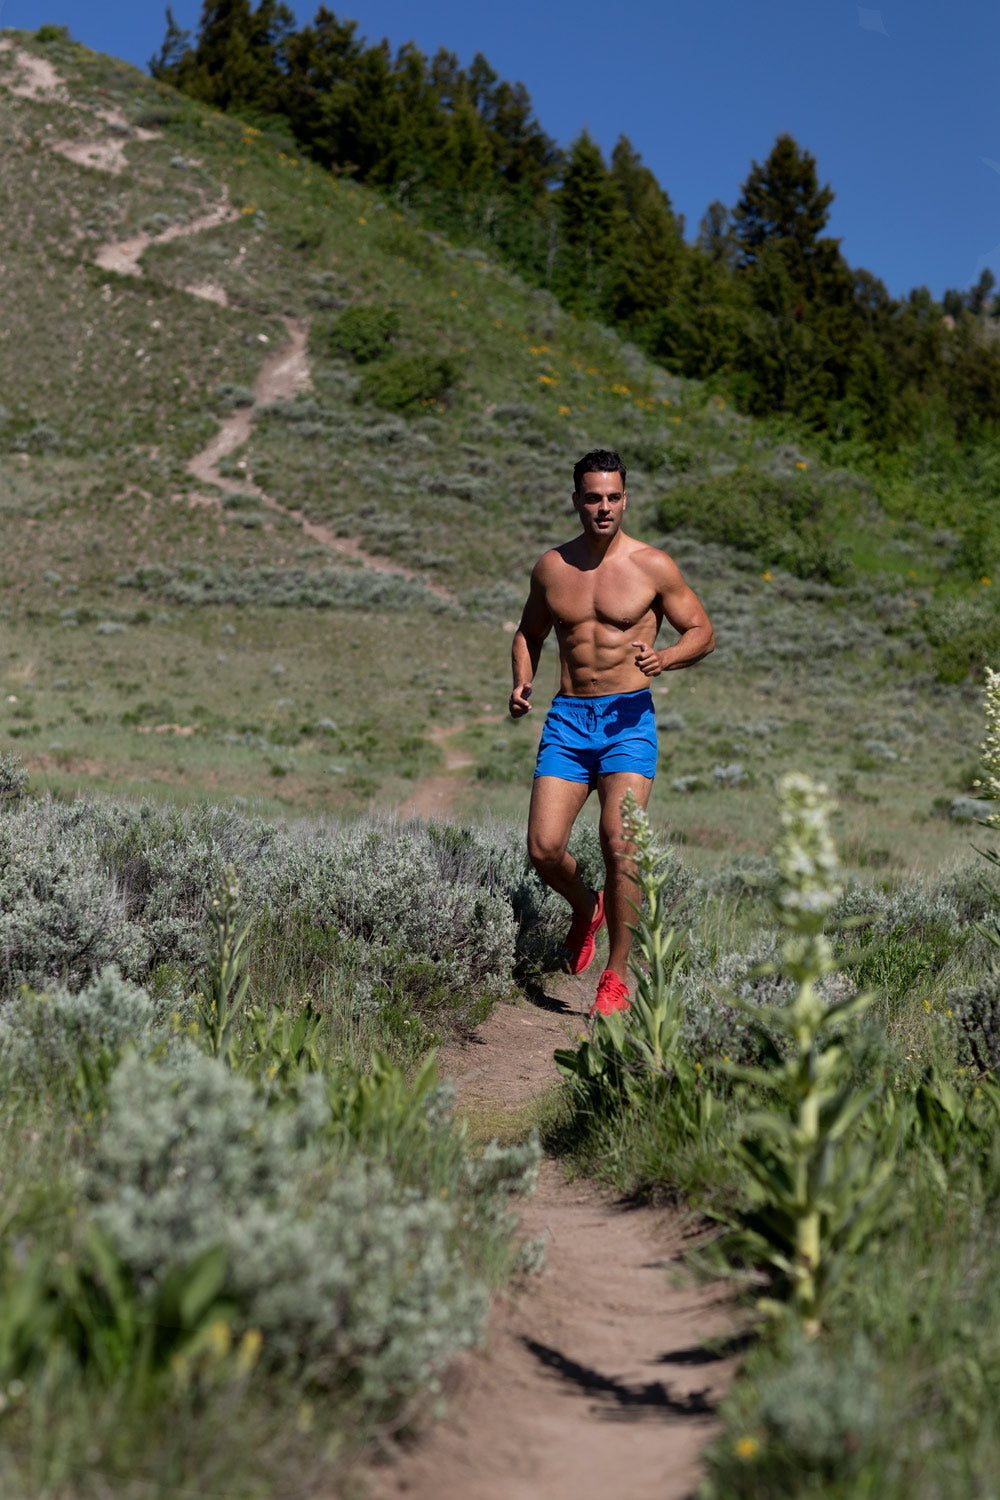 Matthew Konsmo trail running on mountain trail